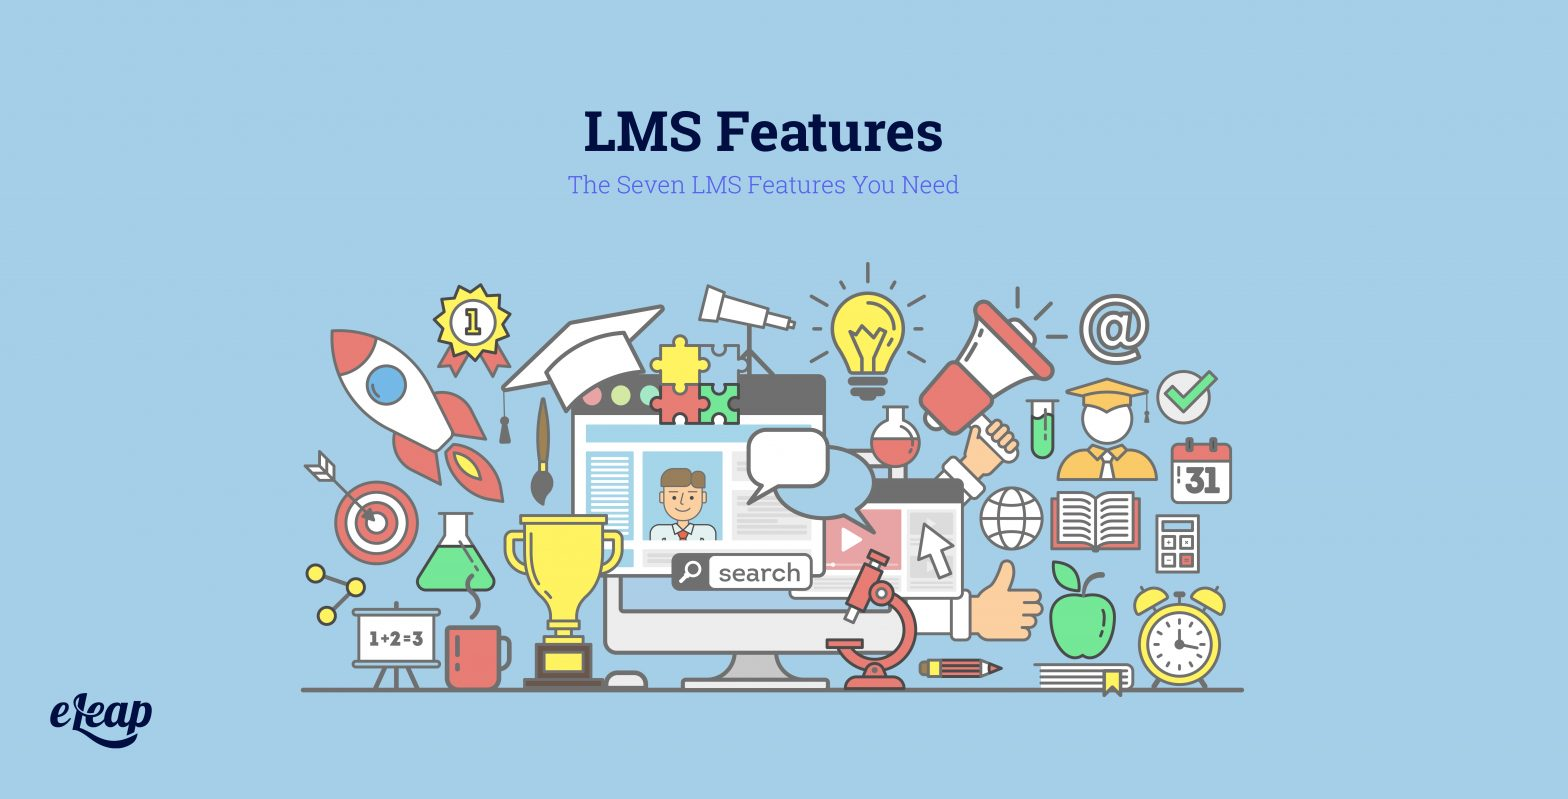 LMS Features